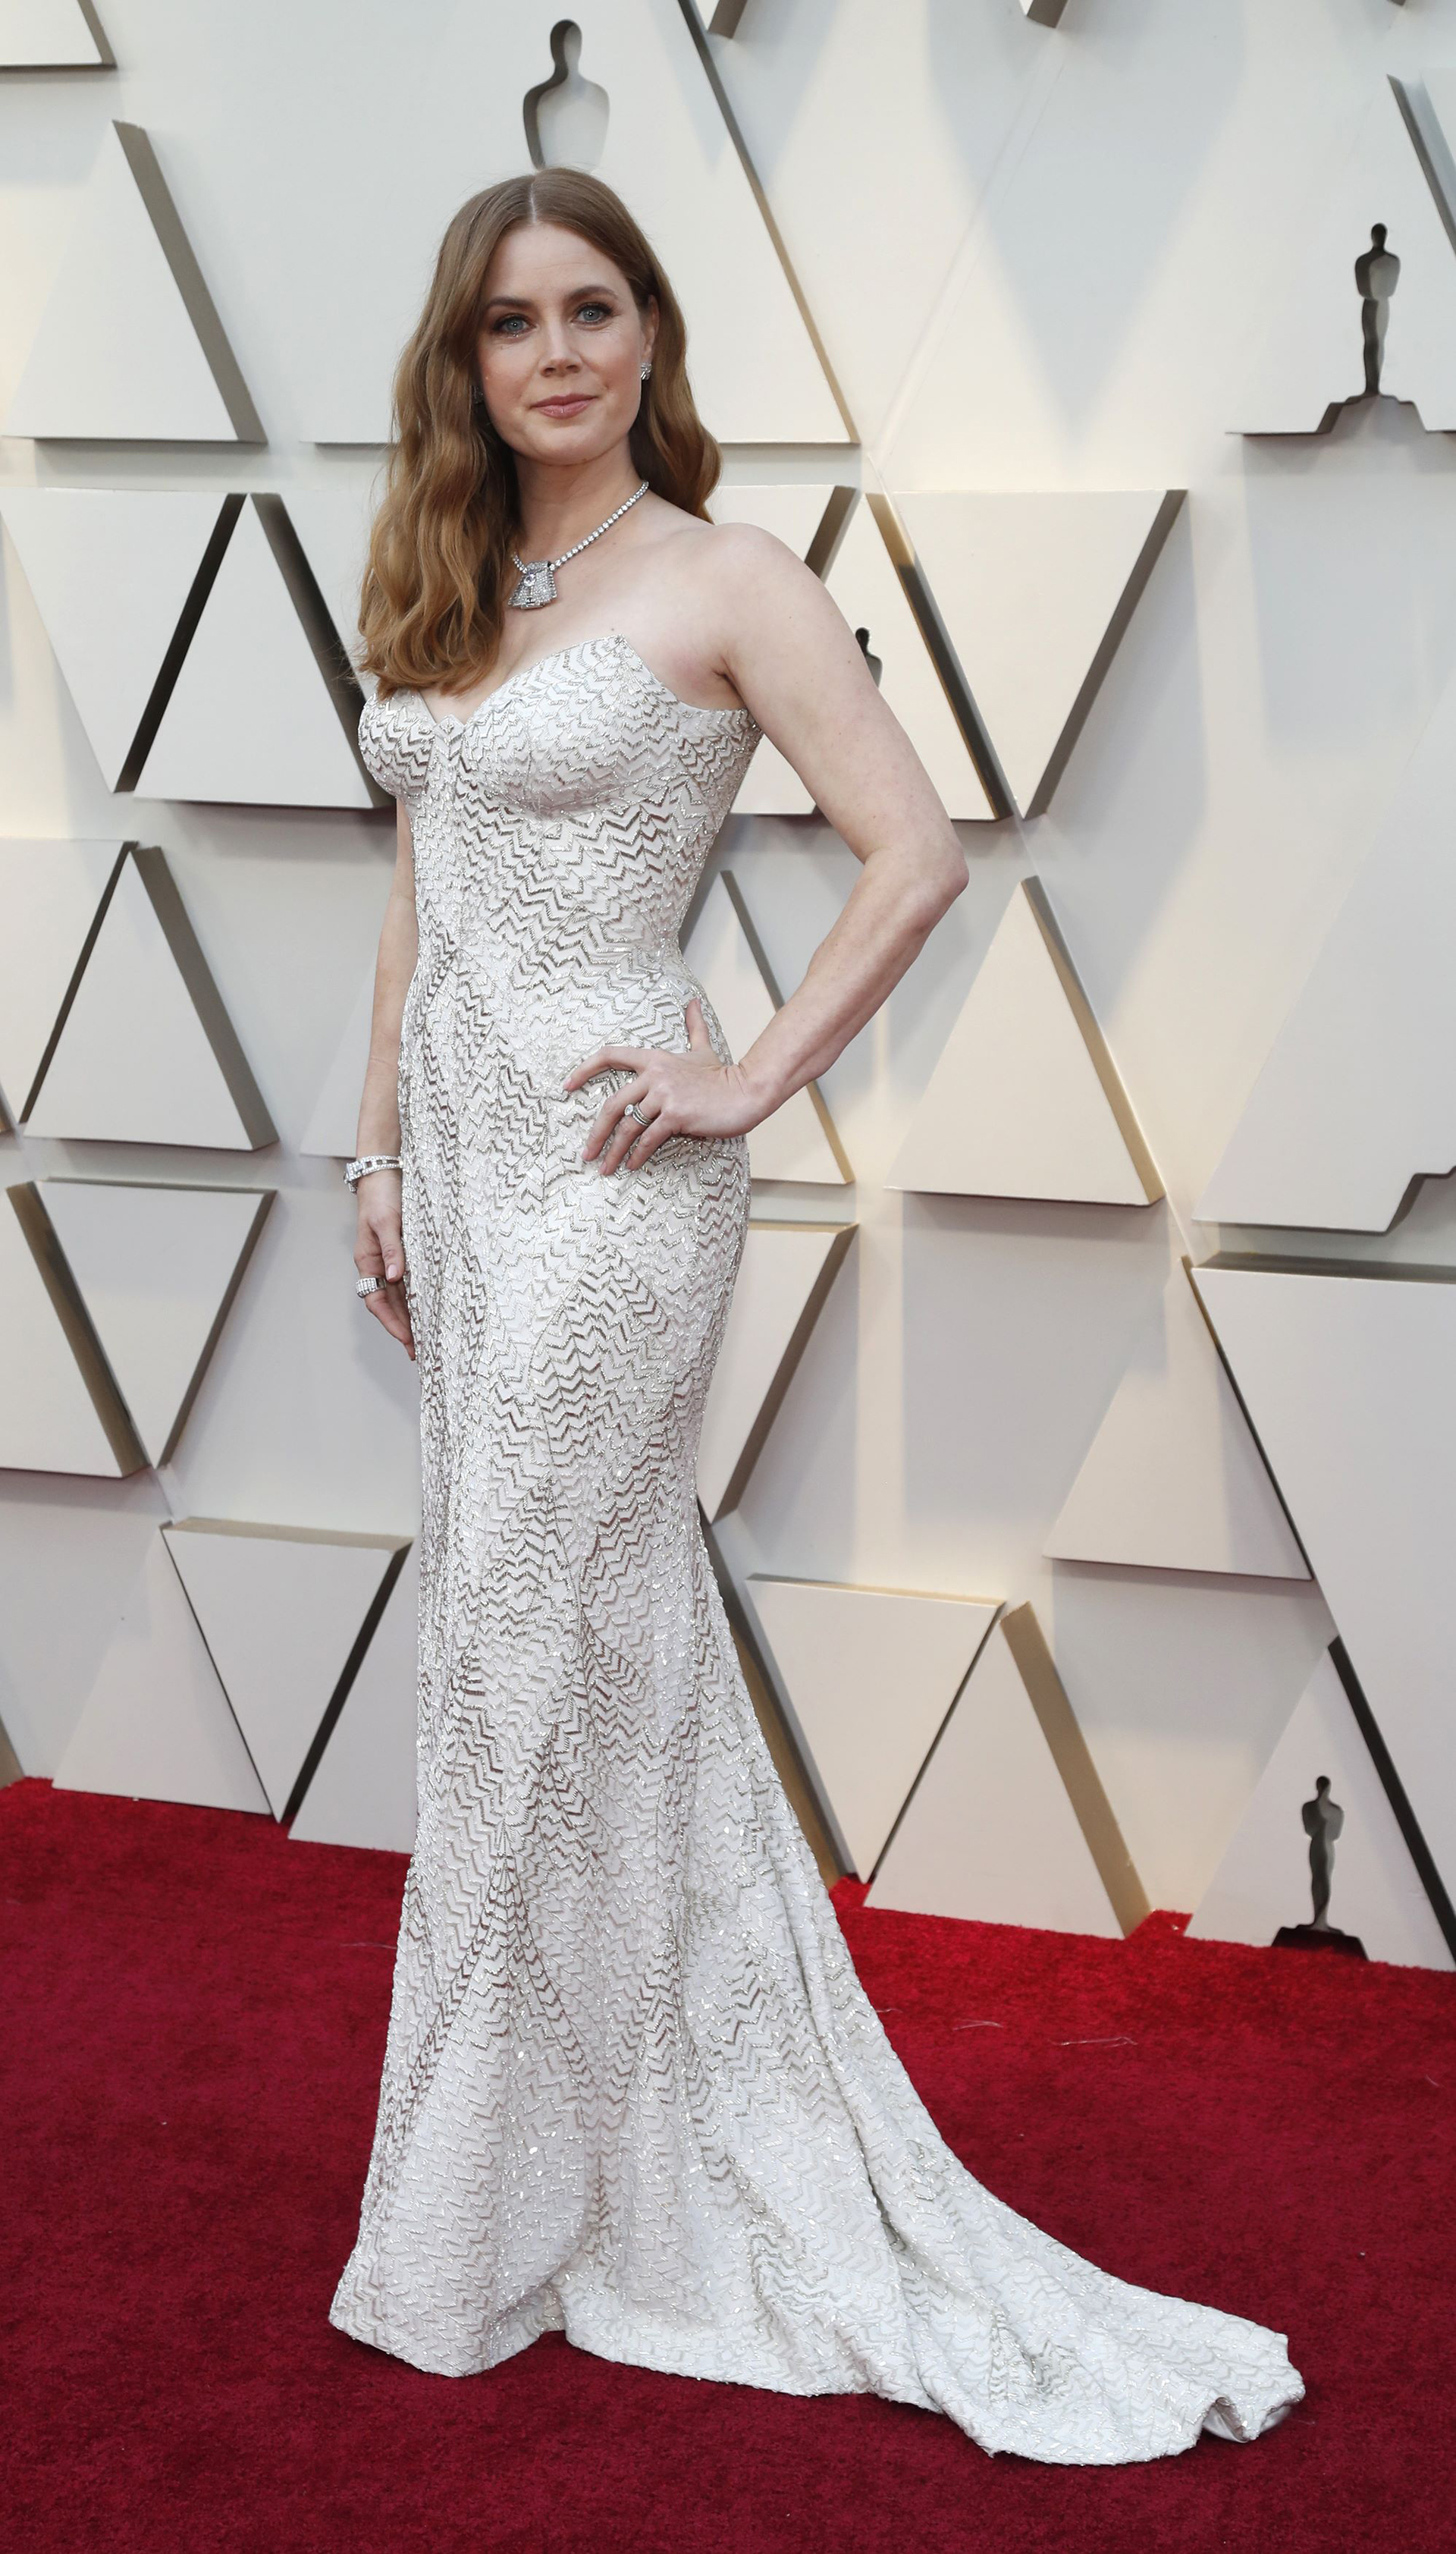 91st Academy Awards - Oscars Arrivals - Red Carpet - Hollywood, Los Angeles, California, U.S., February 24, 2019. Amy Adams. REUTERS/Mario Anzuoni